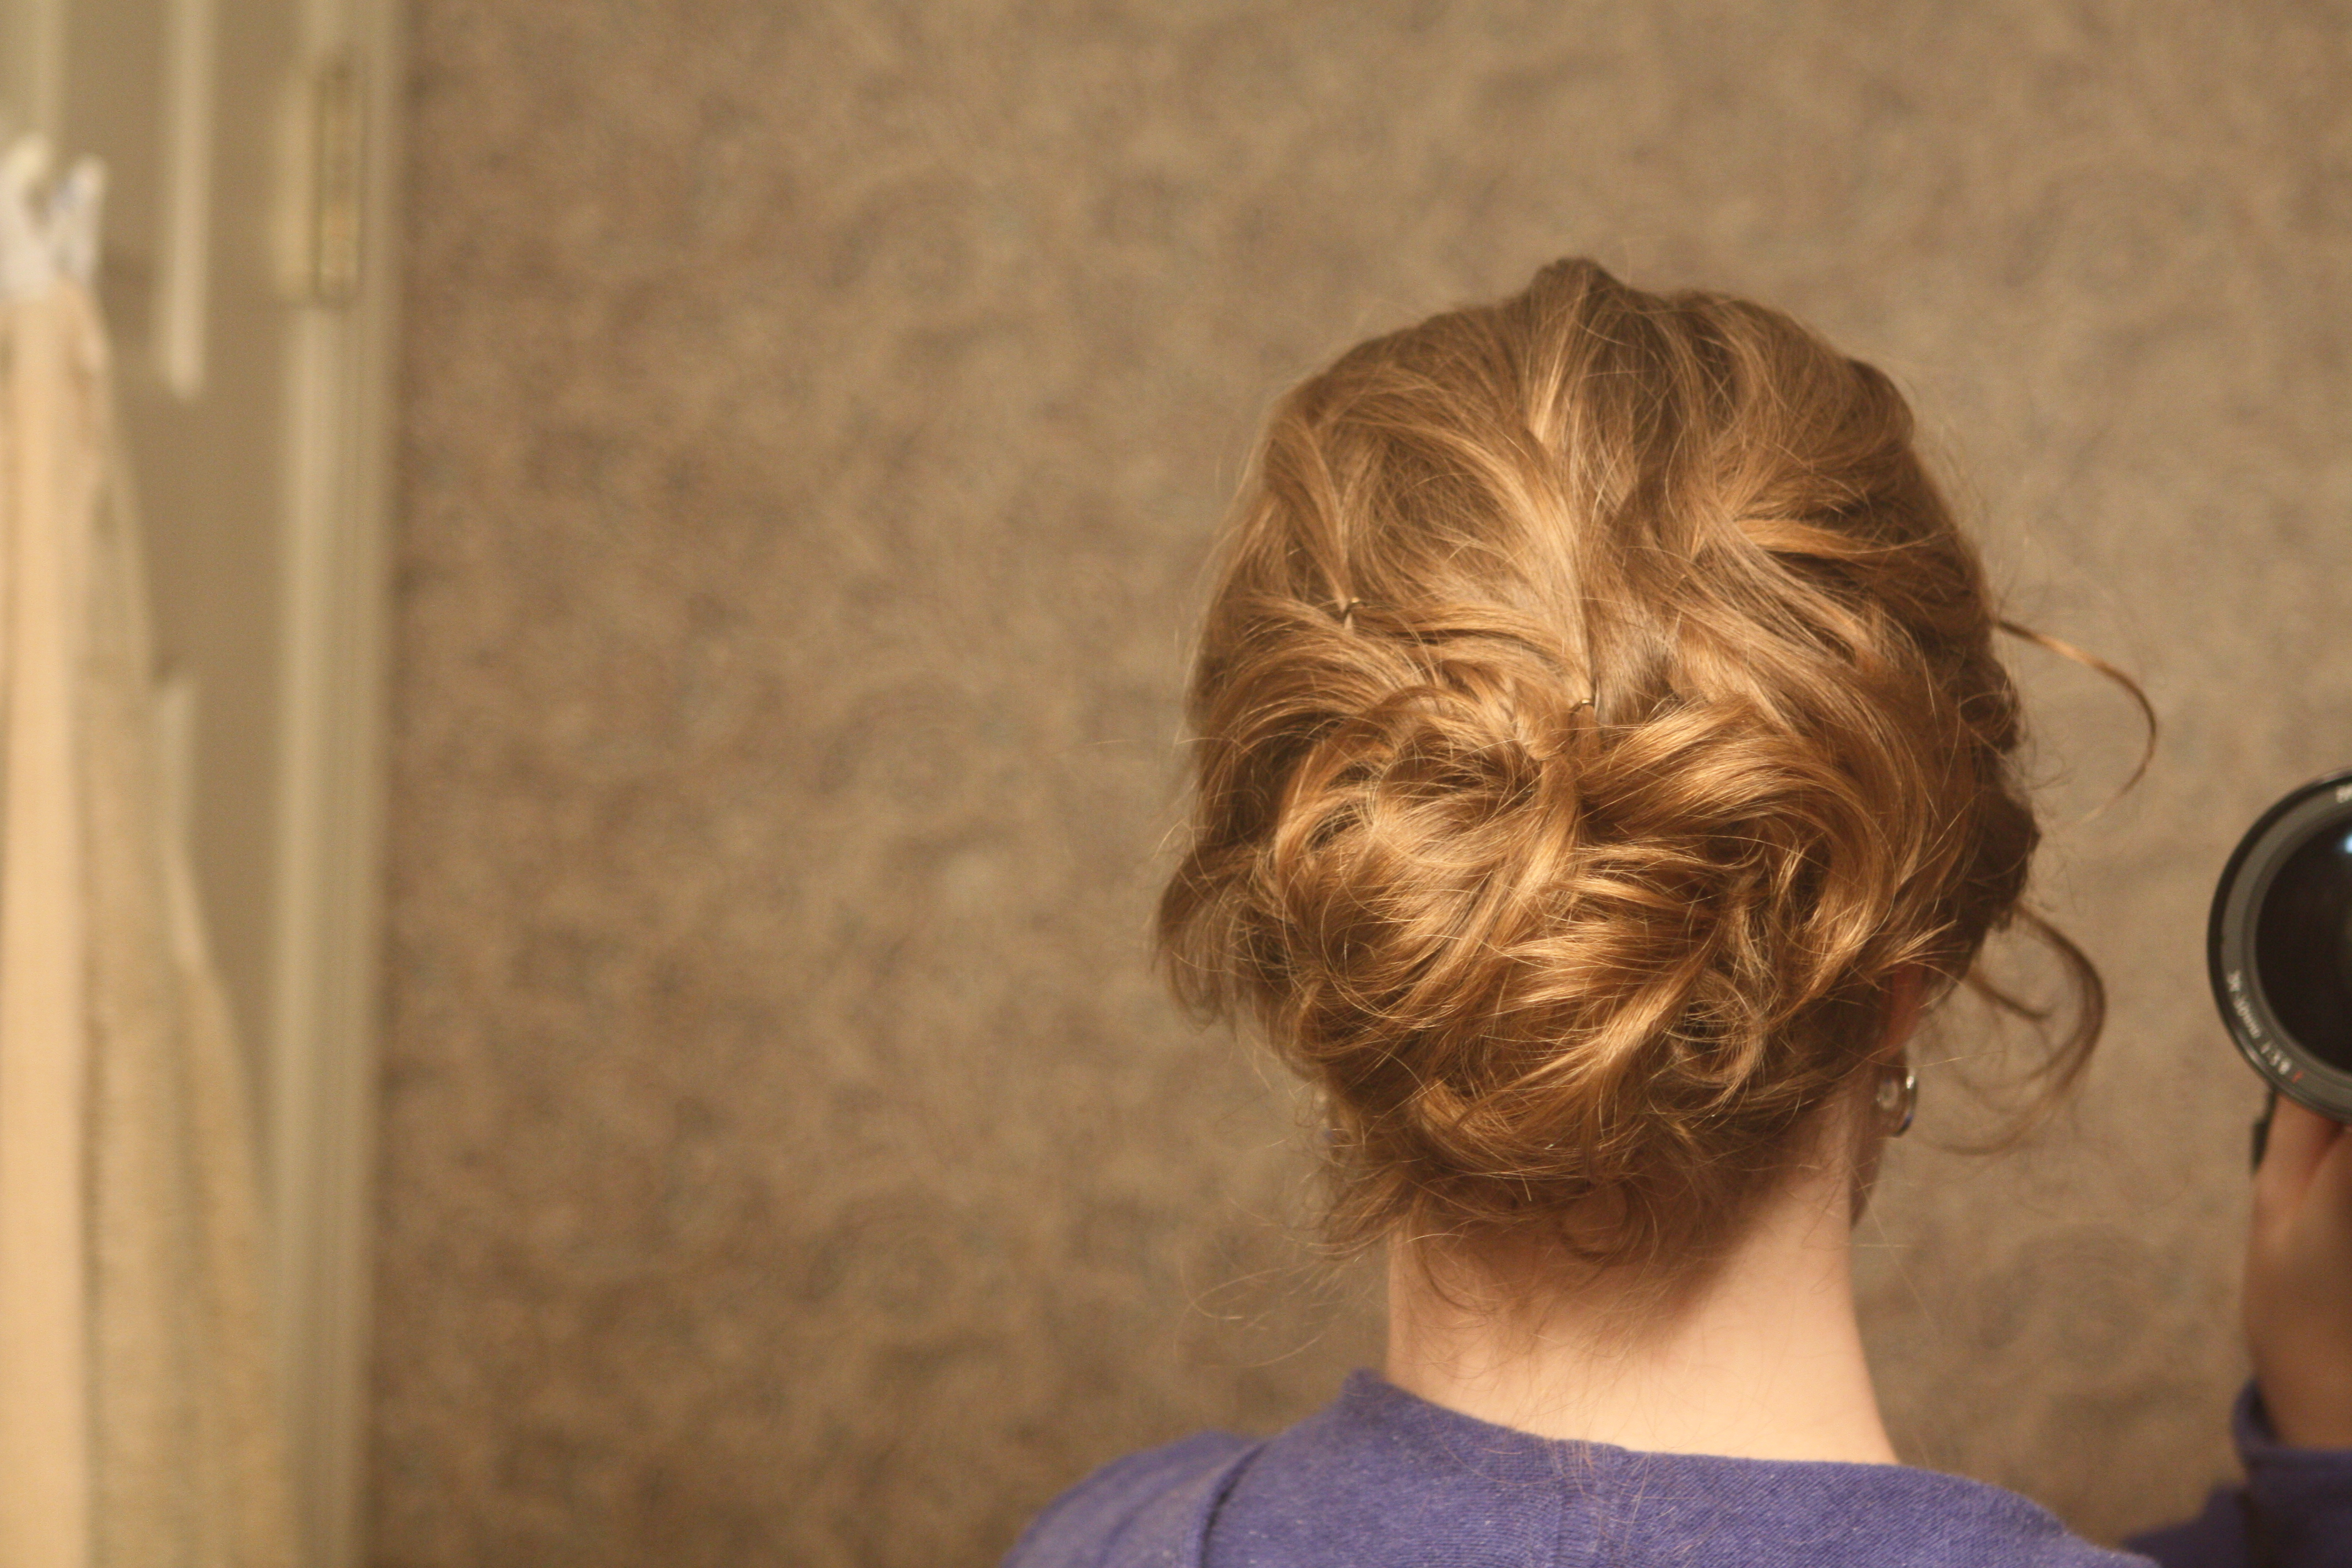 Beauty, Chignon, Wavy Hair